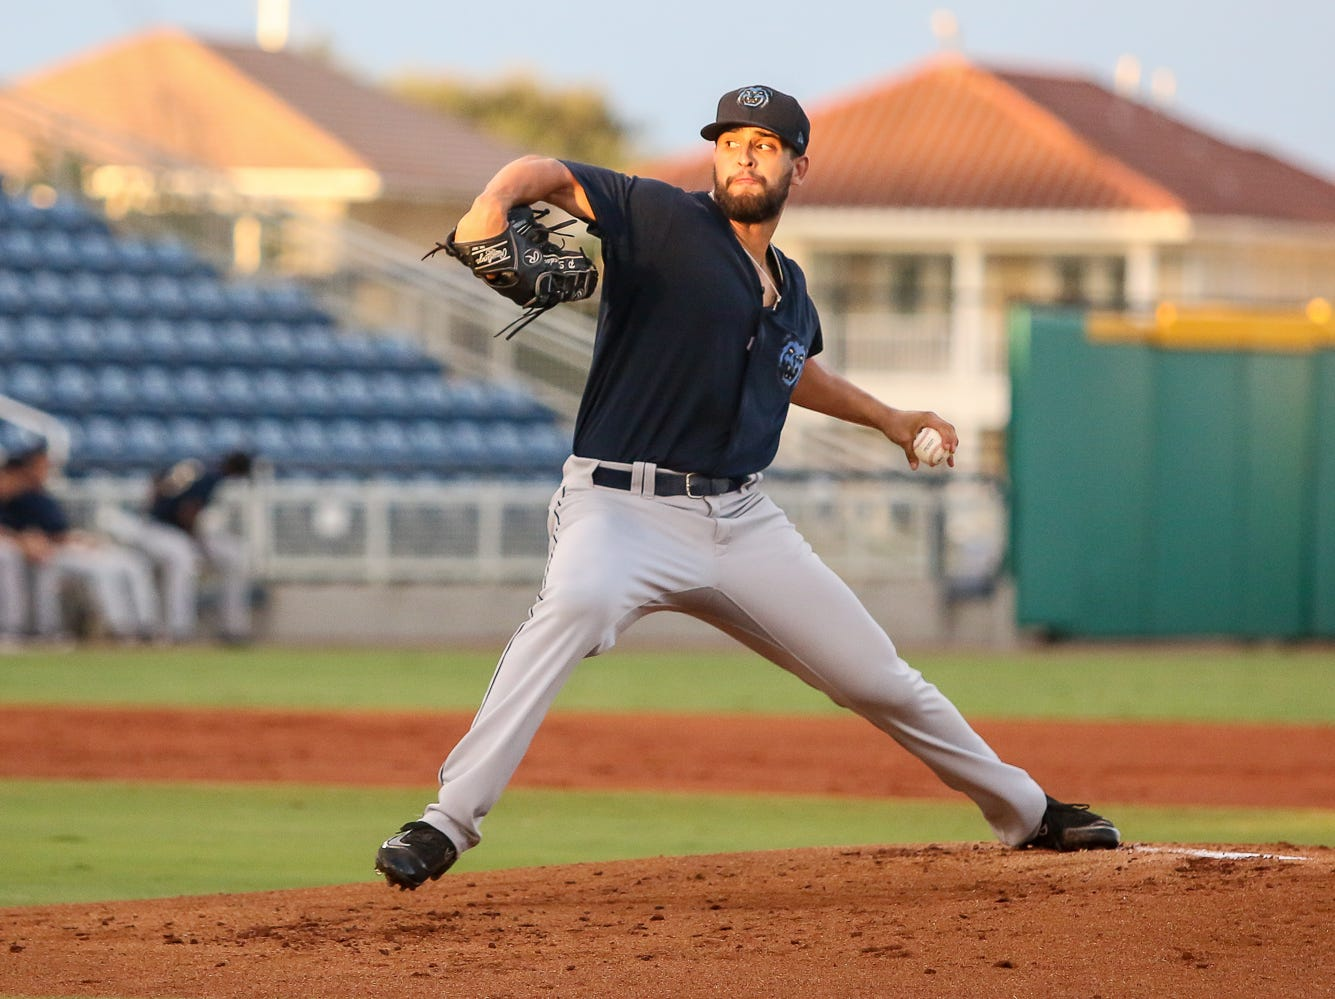 Mobile's Patrick Sandoval (26) pitches against Pensacola during the Blue Wahoos' last home game of the regular season on Tuesday, August 28, 2018.